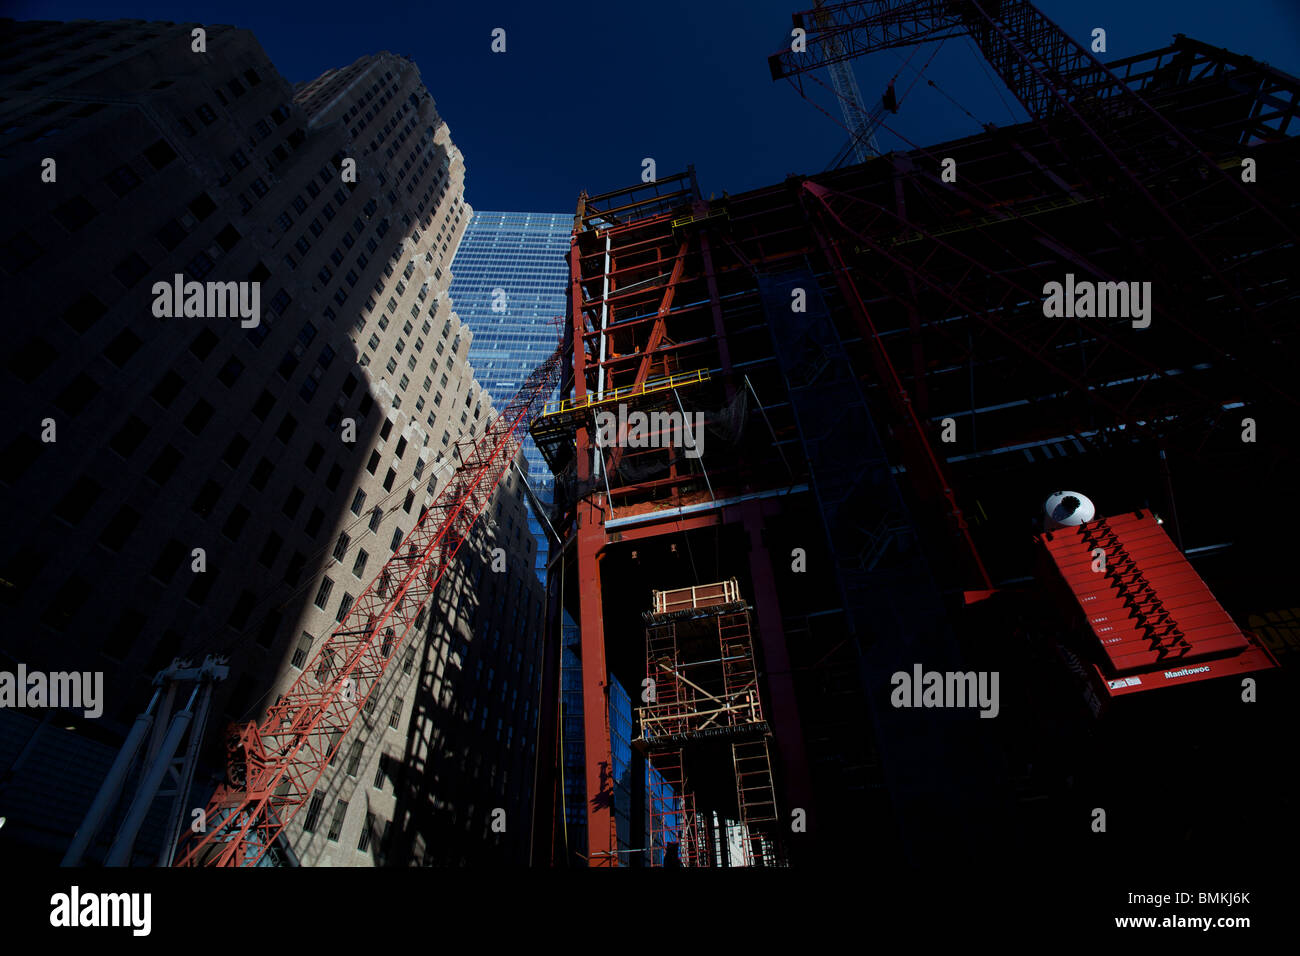 Construction work on One World trade Centre which is being built on the Ground Zero site in New York City. Stock Photo